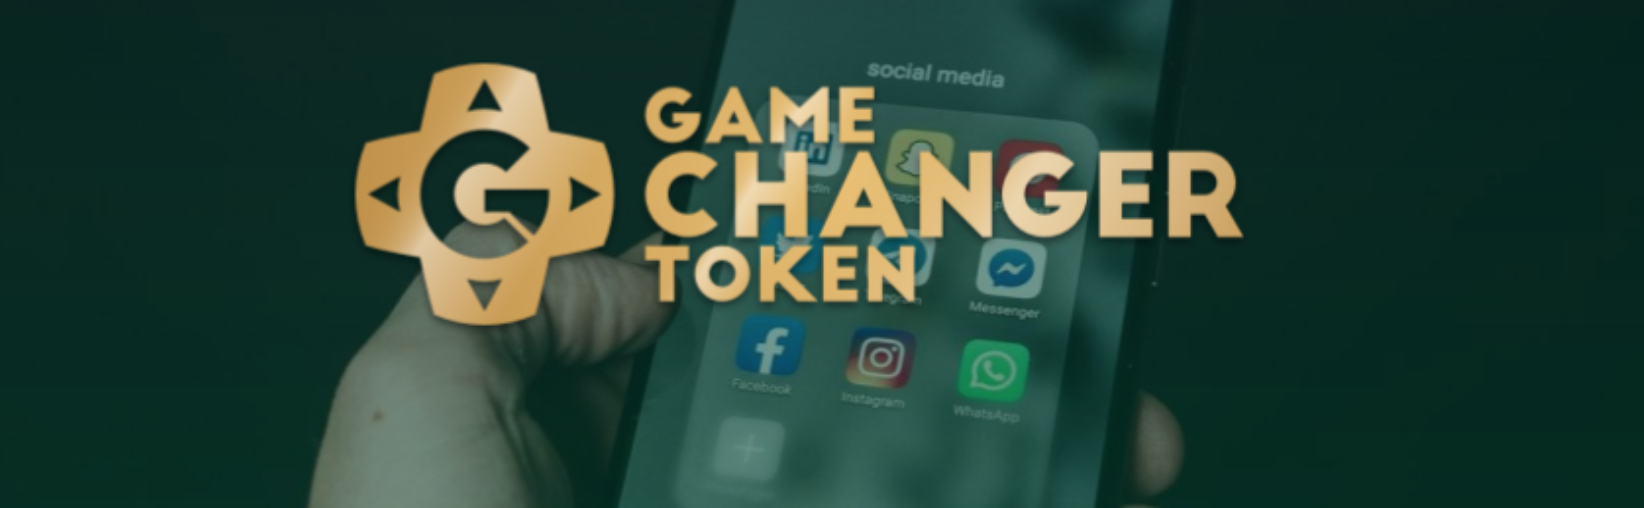 This new currency will become the next big thing for apps, games and social media - meet Game Changer